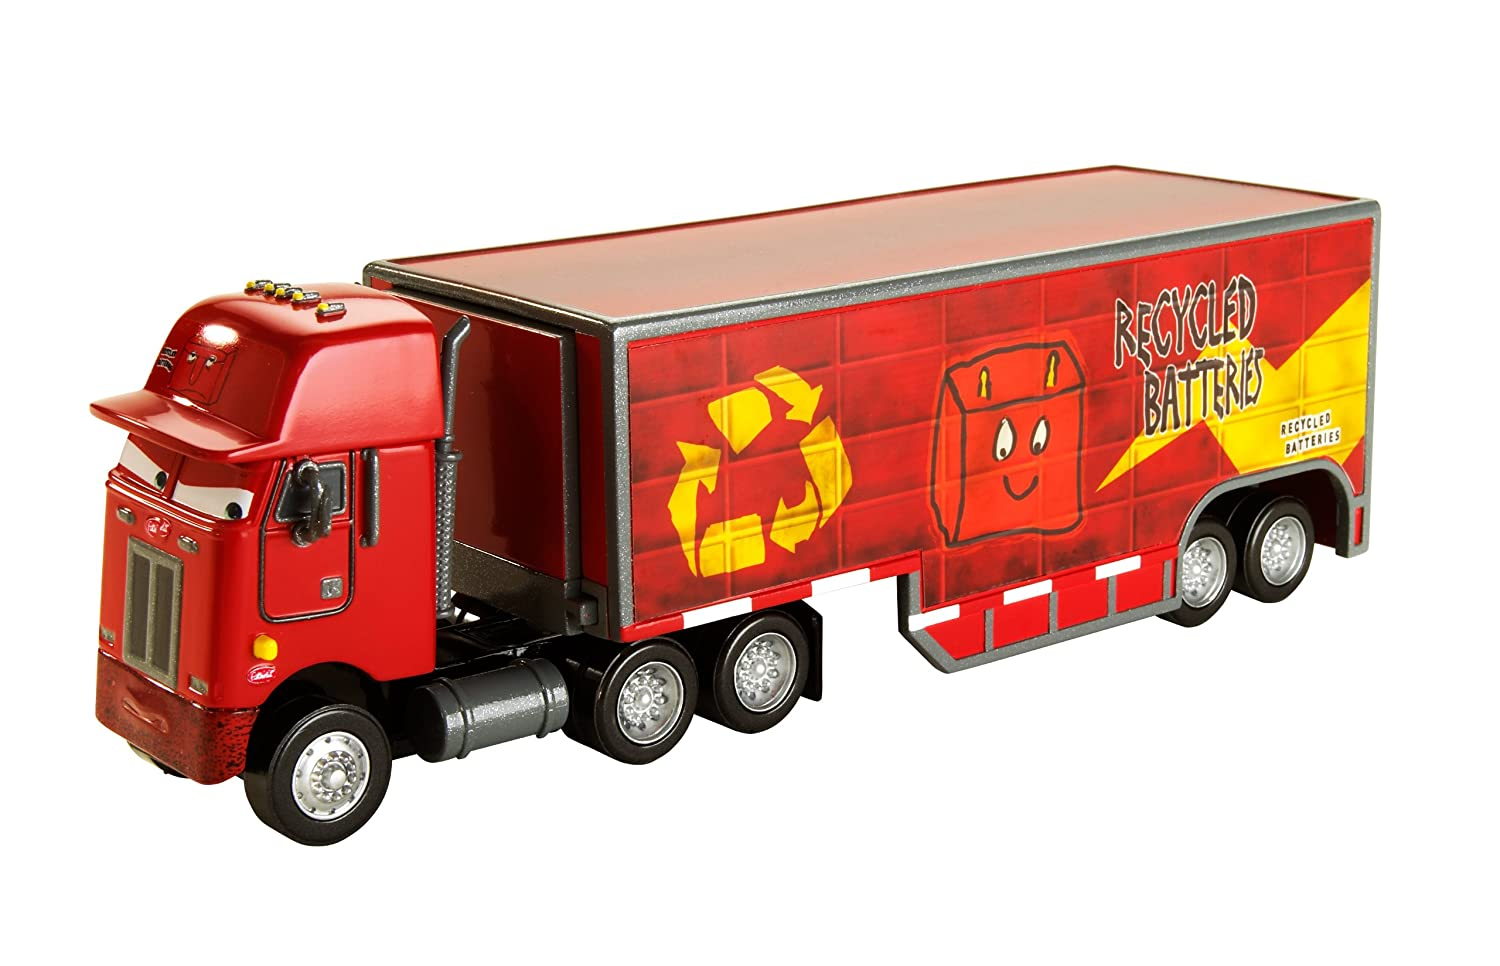 amazoncom cars jerry recycled batteries hauler toys games - Disney Cars Toys Truck